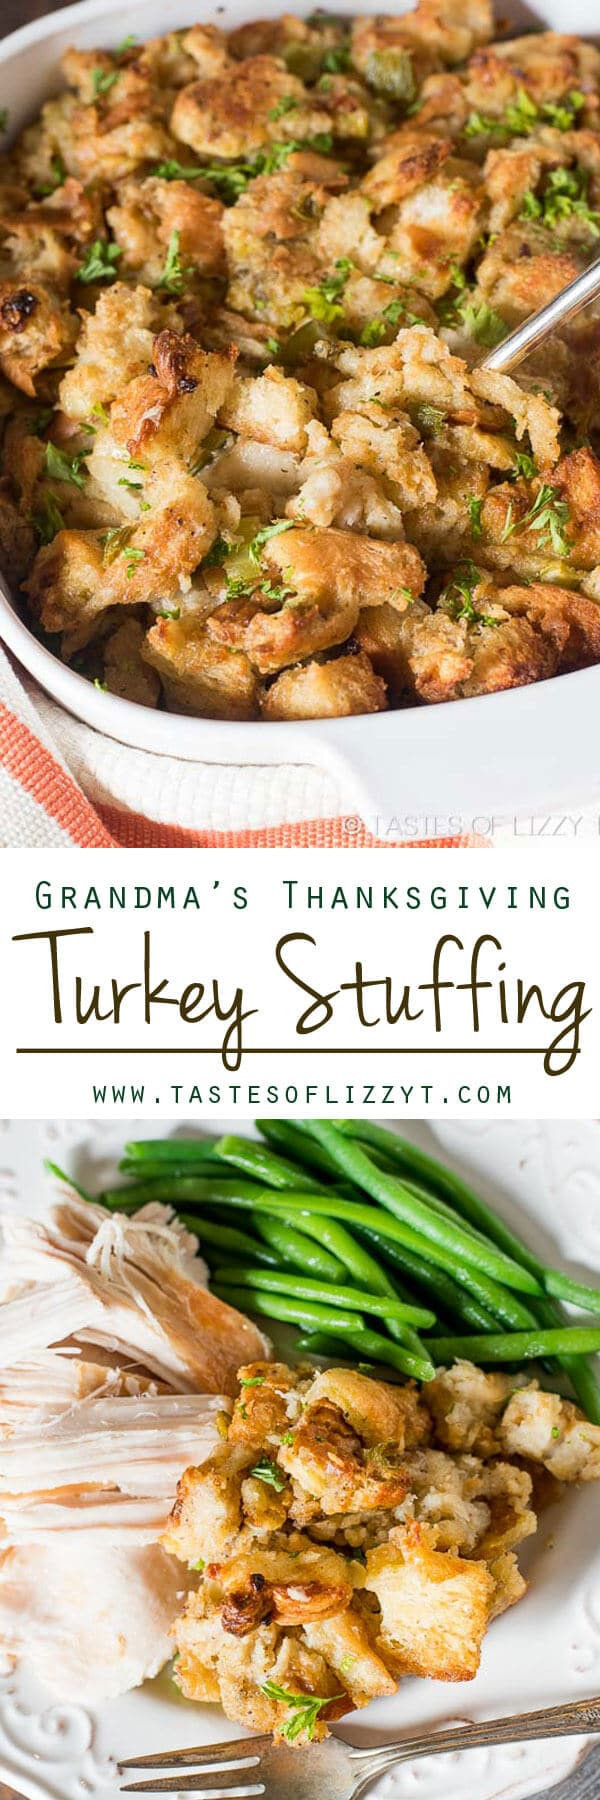 Turkey Stuffing Recipes For Thanksgiving  Grandma s Thanksgiving Turkey Stuffing Long Time Family